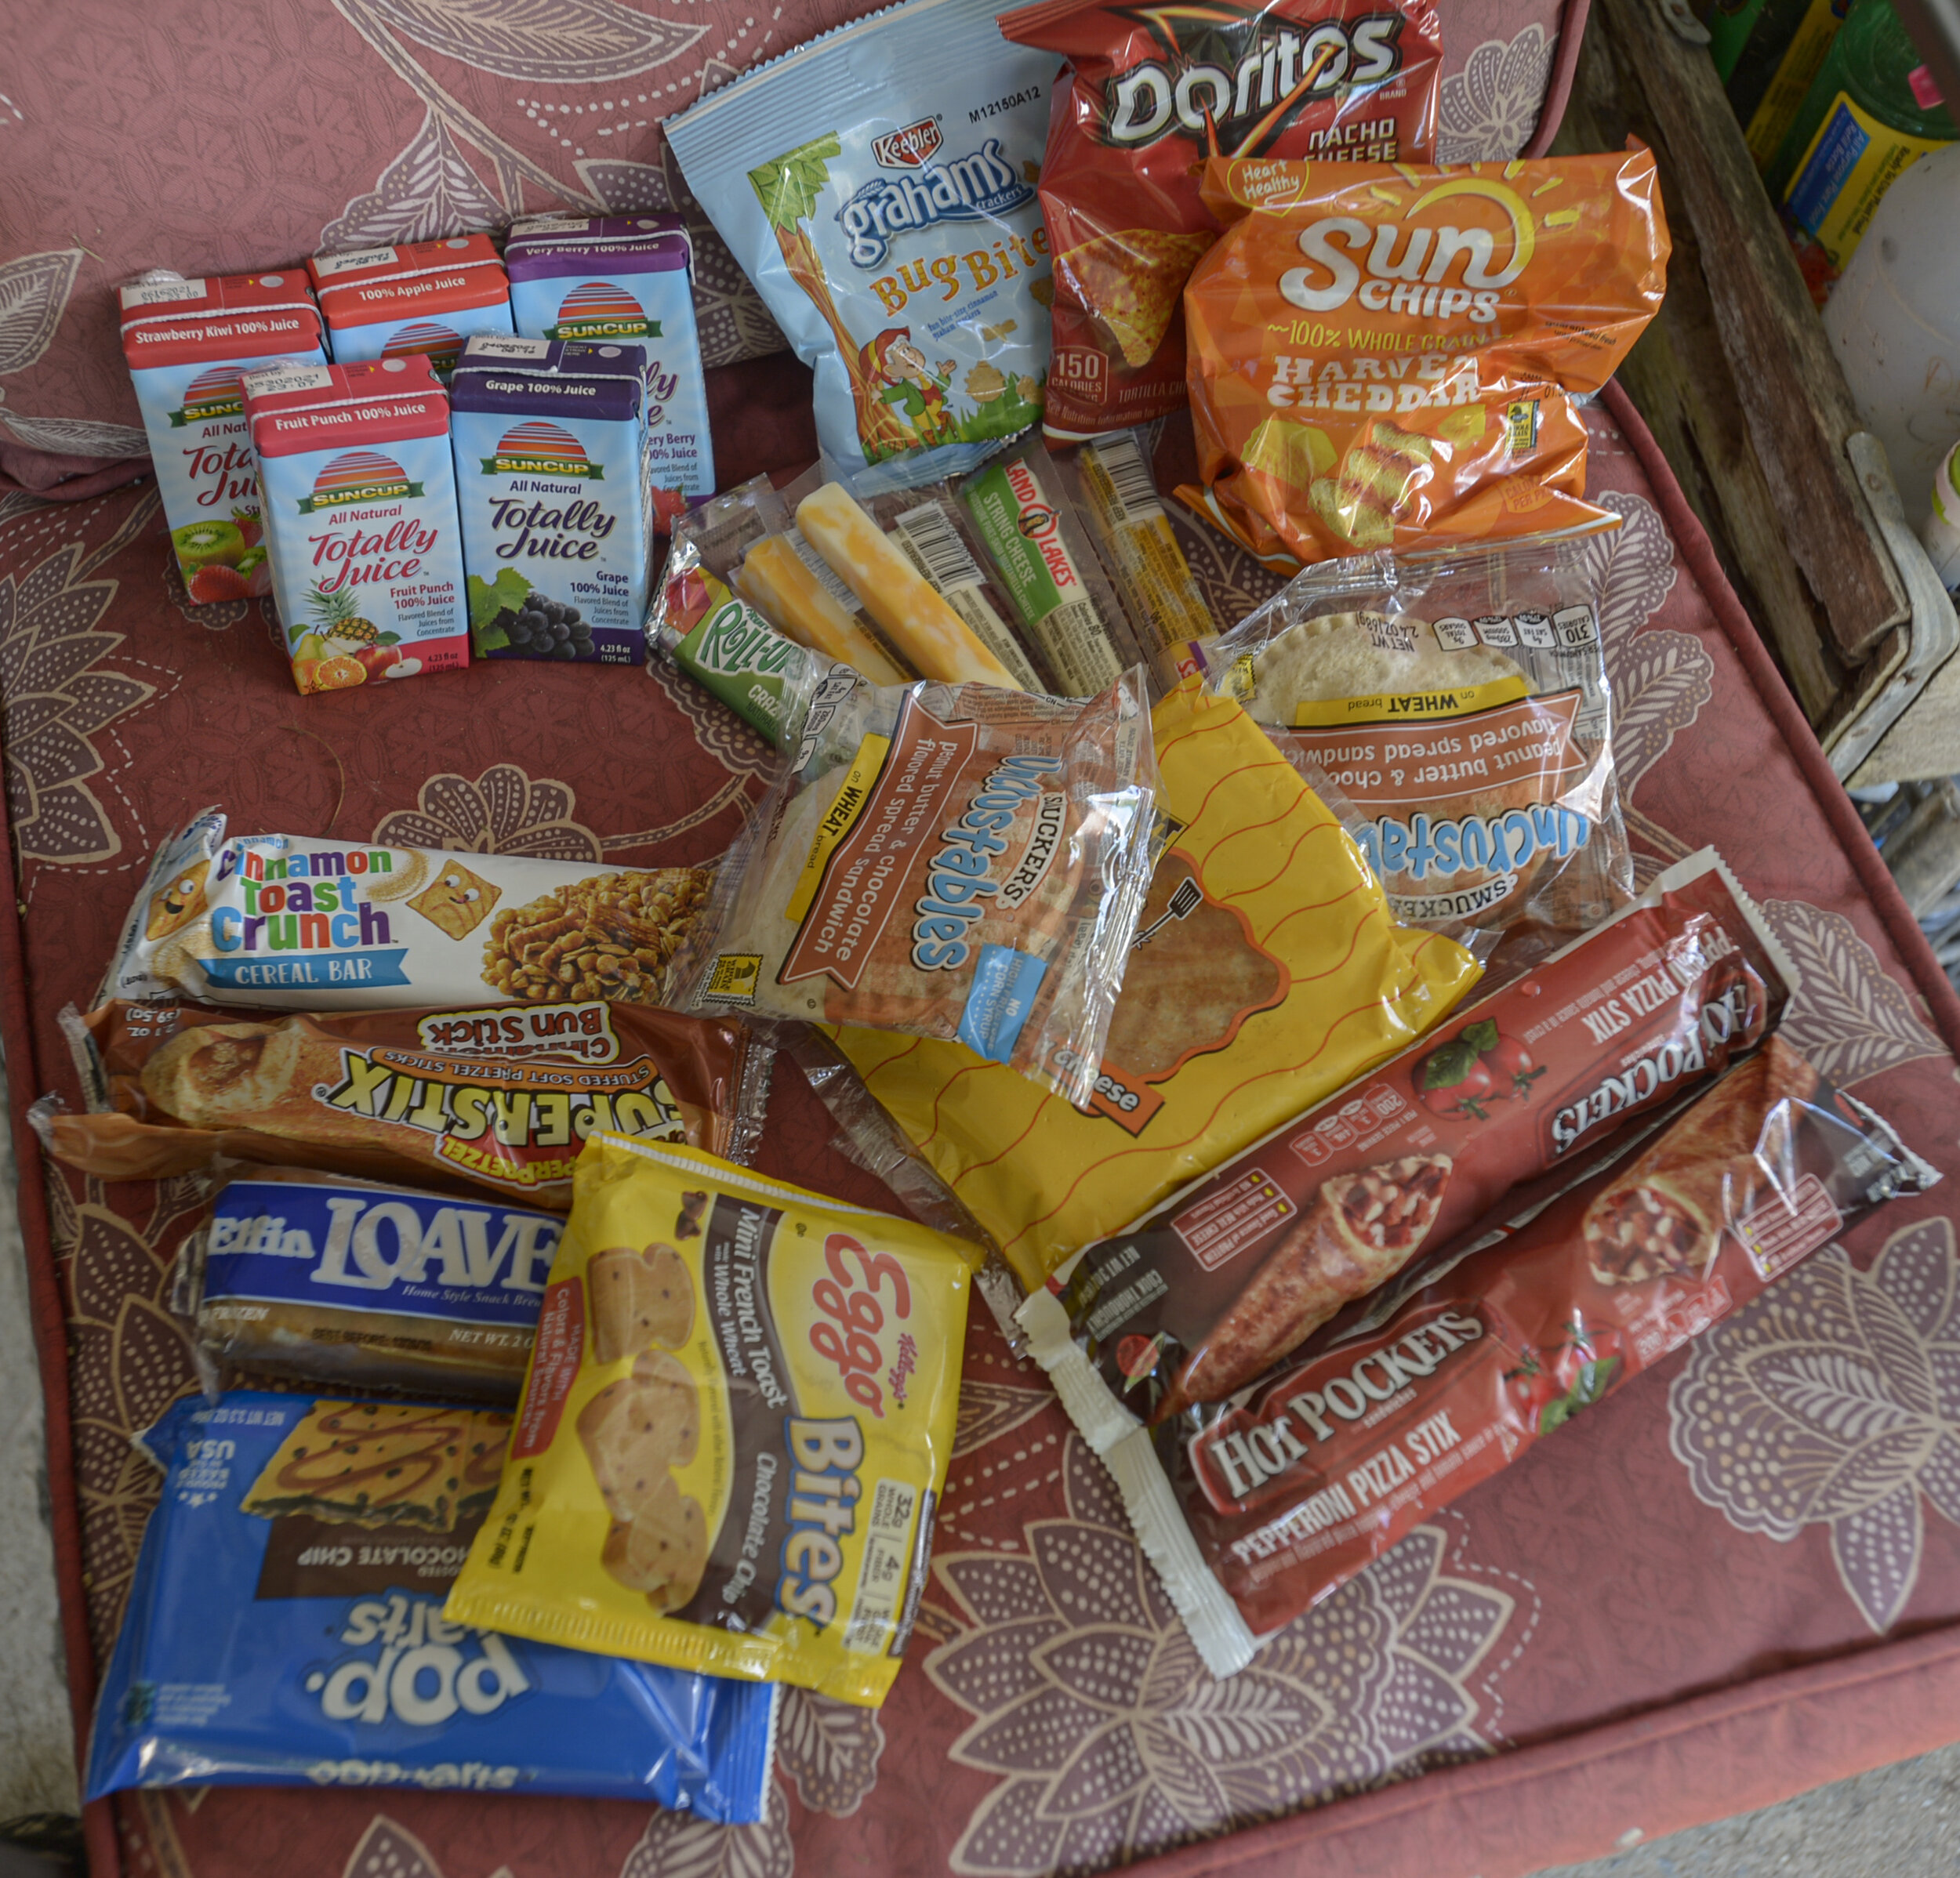 A week's worth of food rations for Laura Hempel for the week of July 13, 2020. The food box is provided by Randolph County's summer feeding program. Photo by F. Brian Ferguson